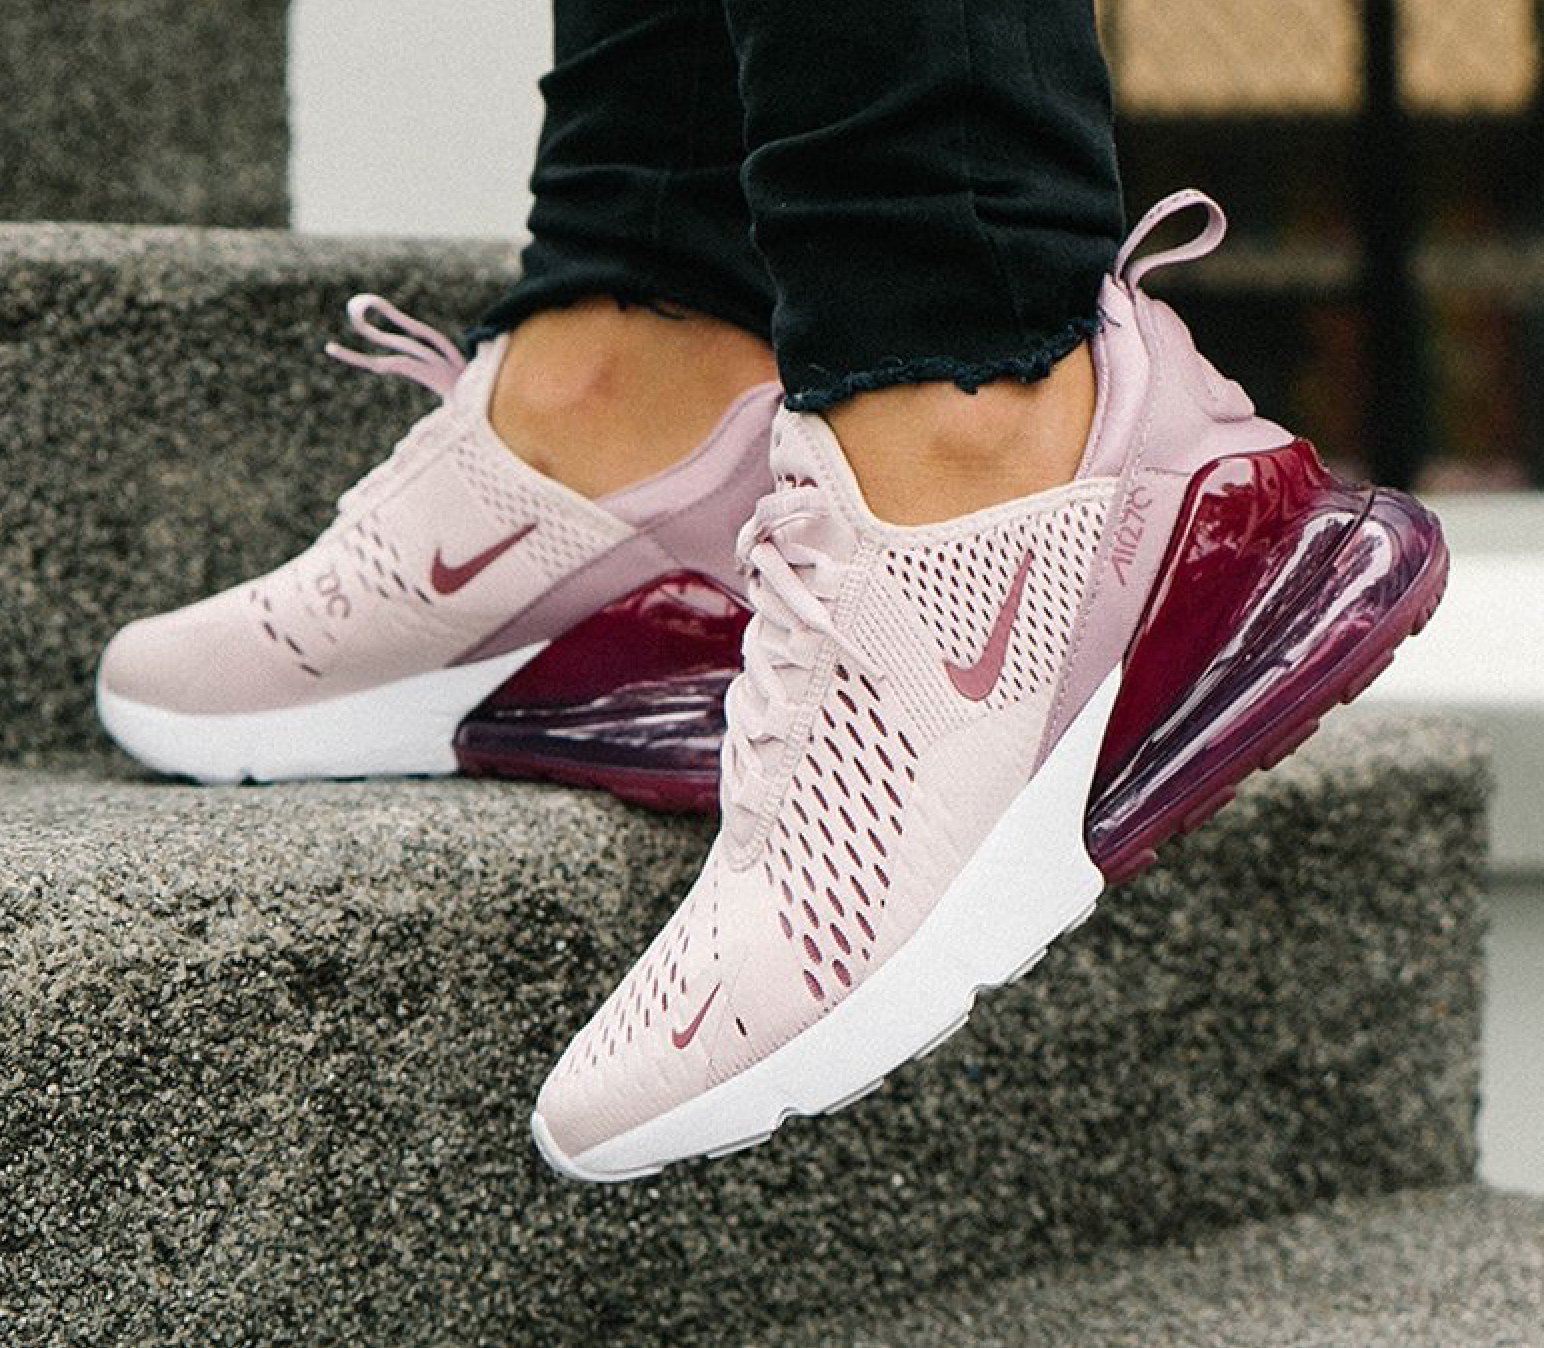 Cool Nike Air Max 270 shoes Barely Rose walking up street steps in black  jeans. 0d3d7eea36e7